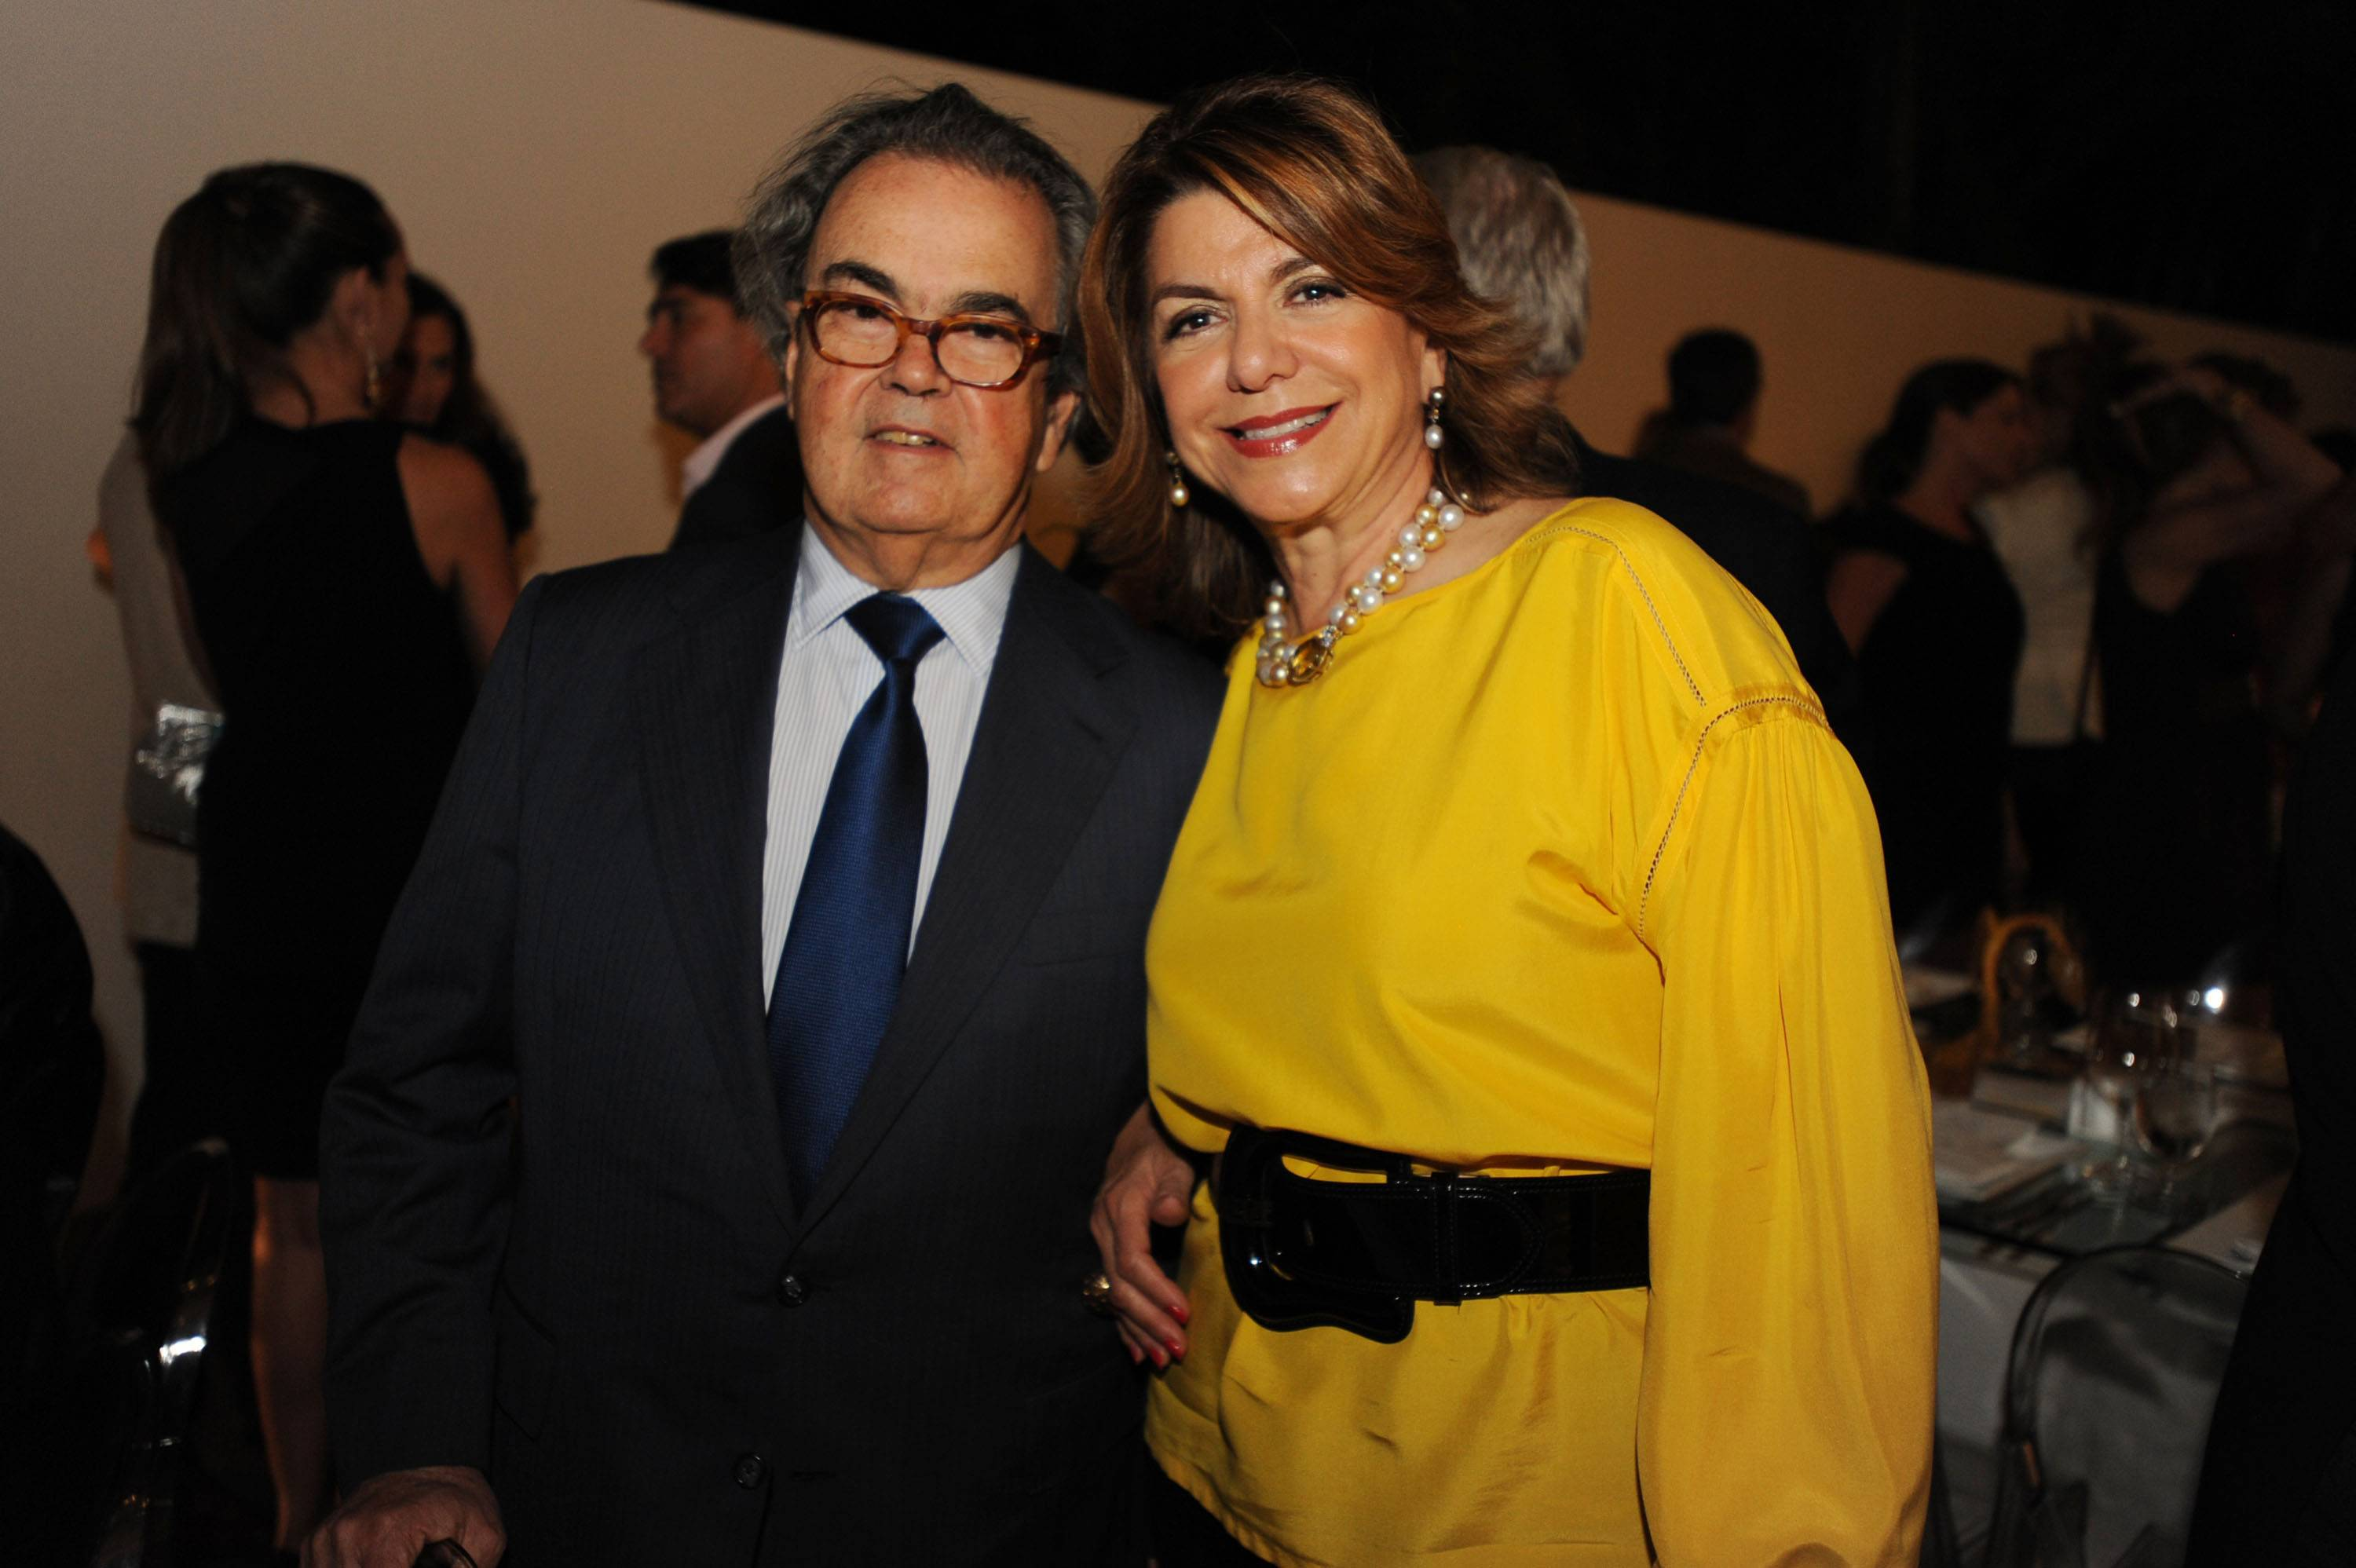 Carlos De La Cruz & Lourdes Collett